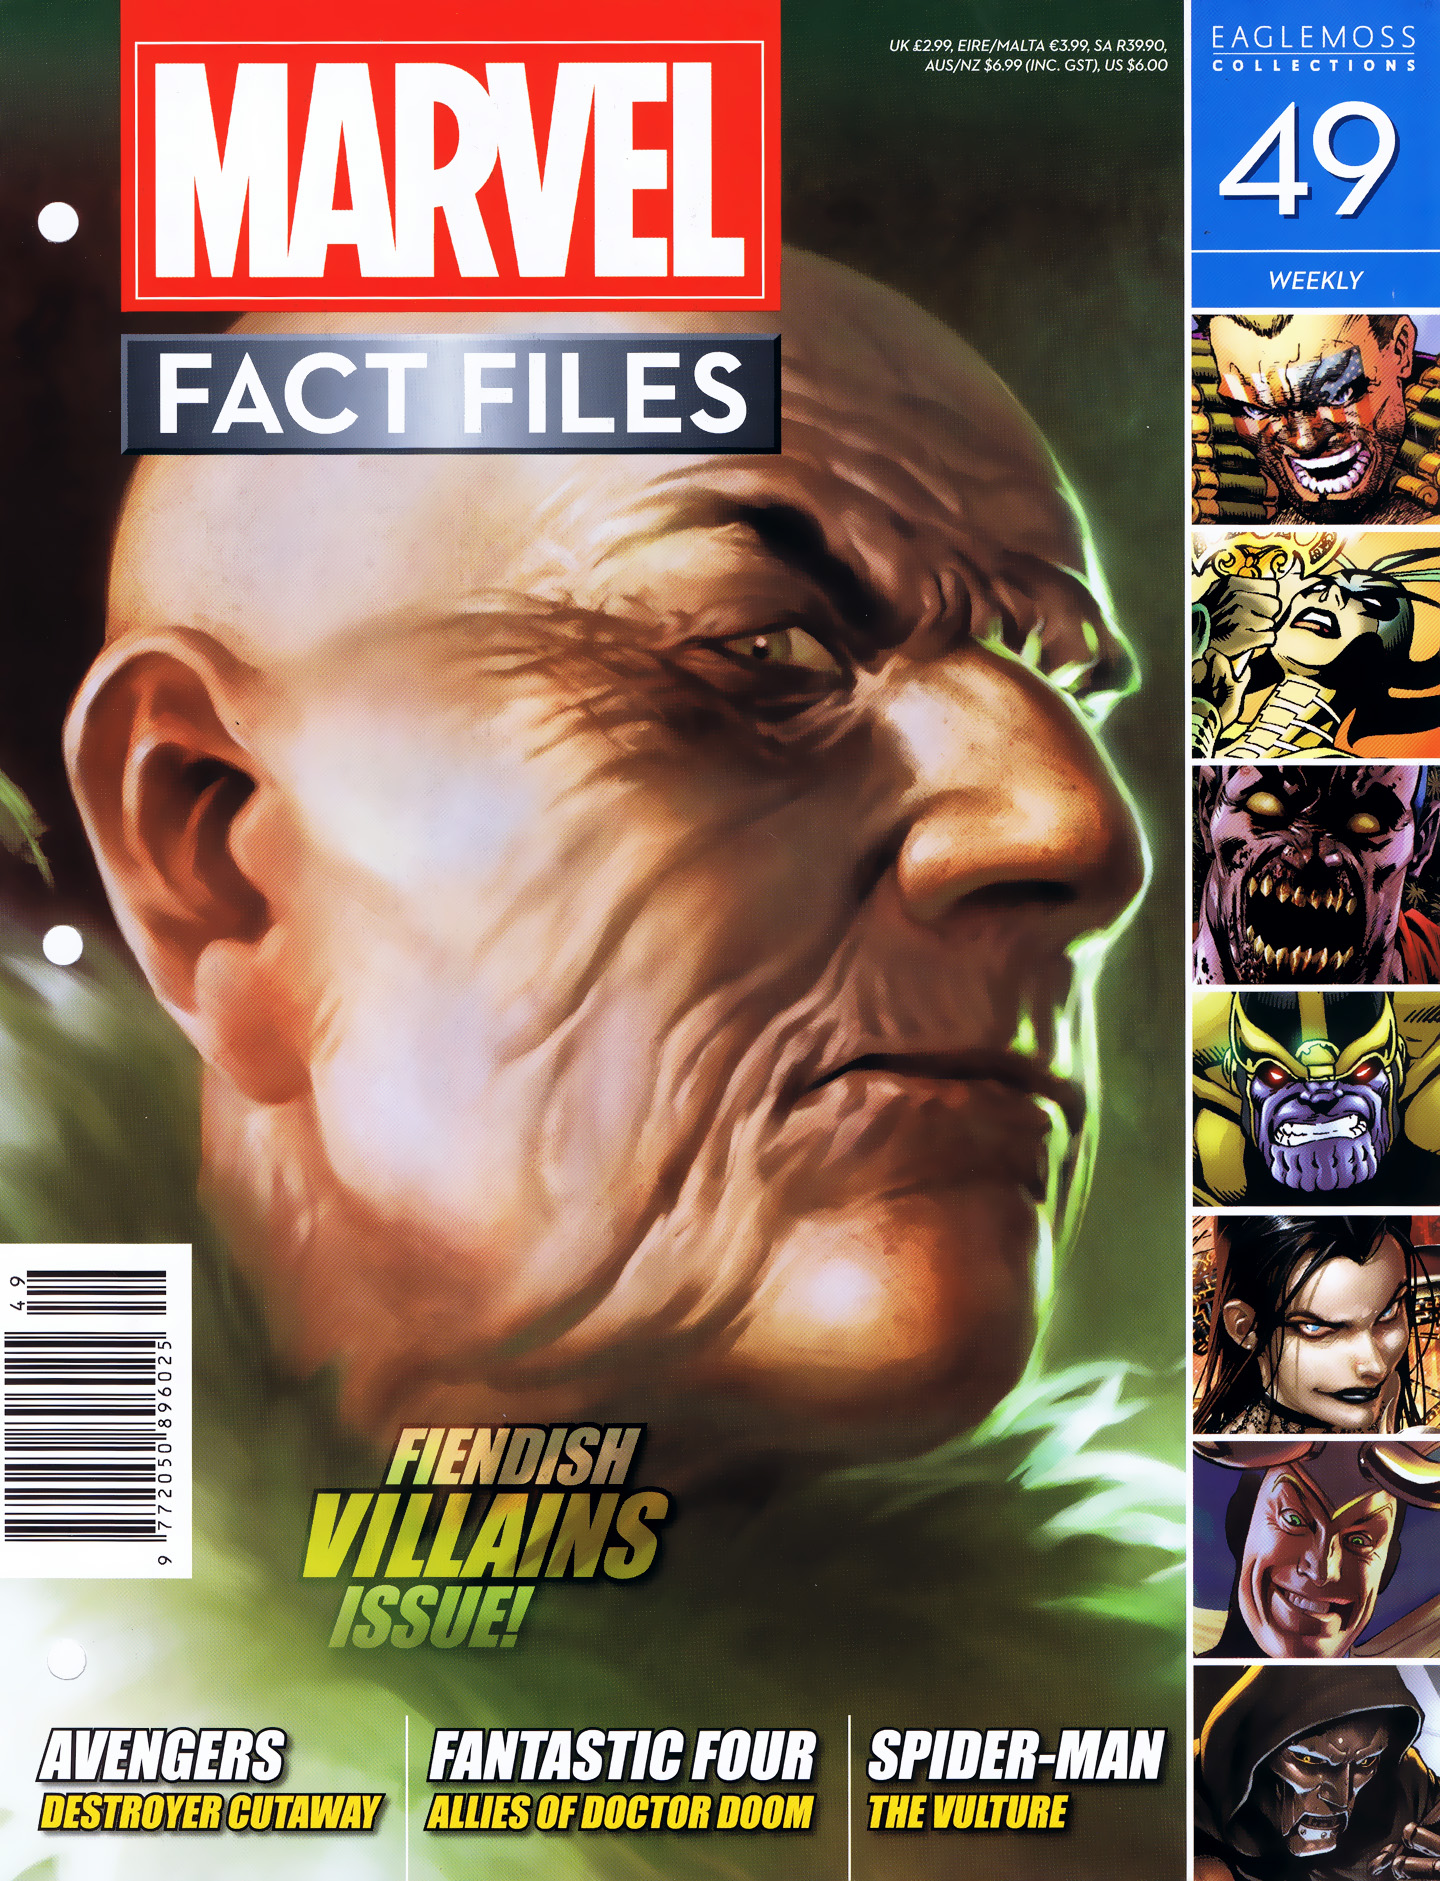 Marvel Fact Files 49 Page 1